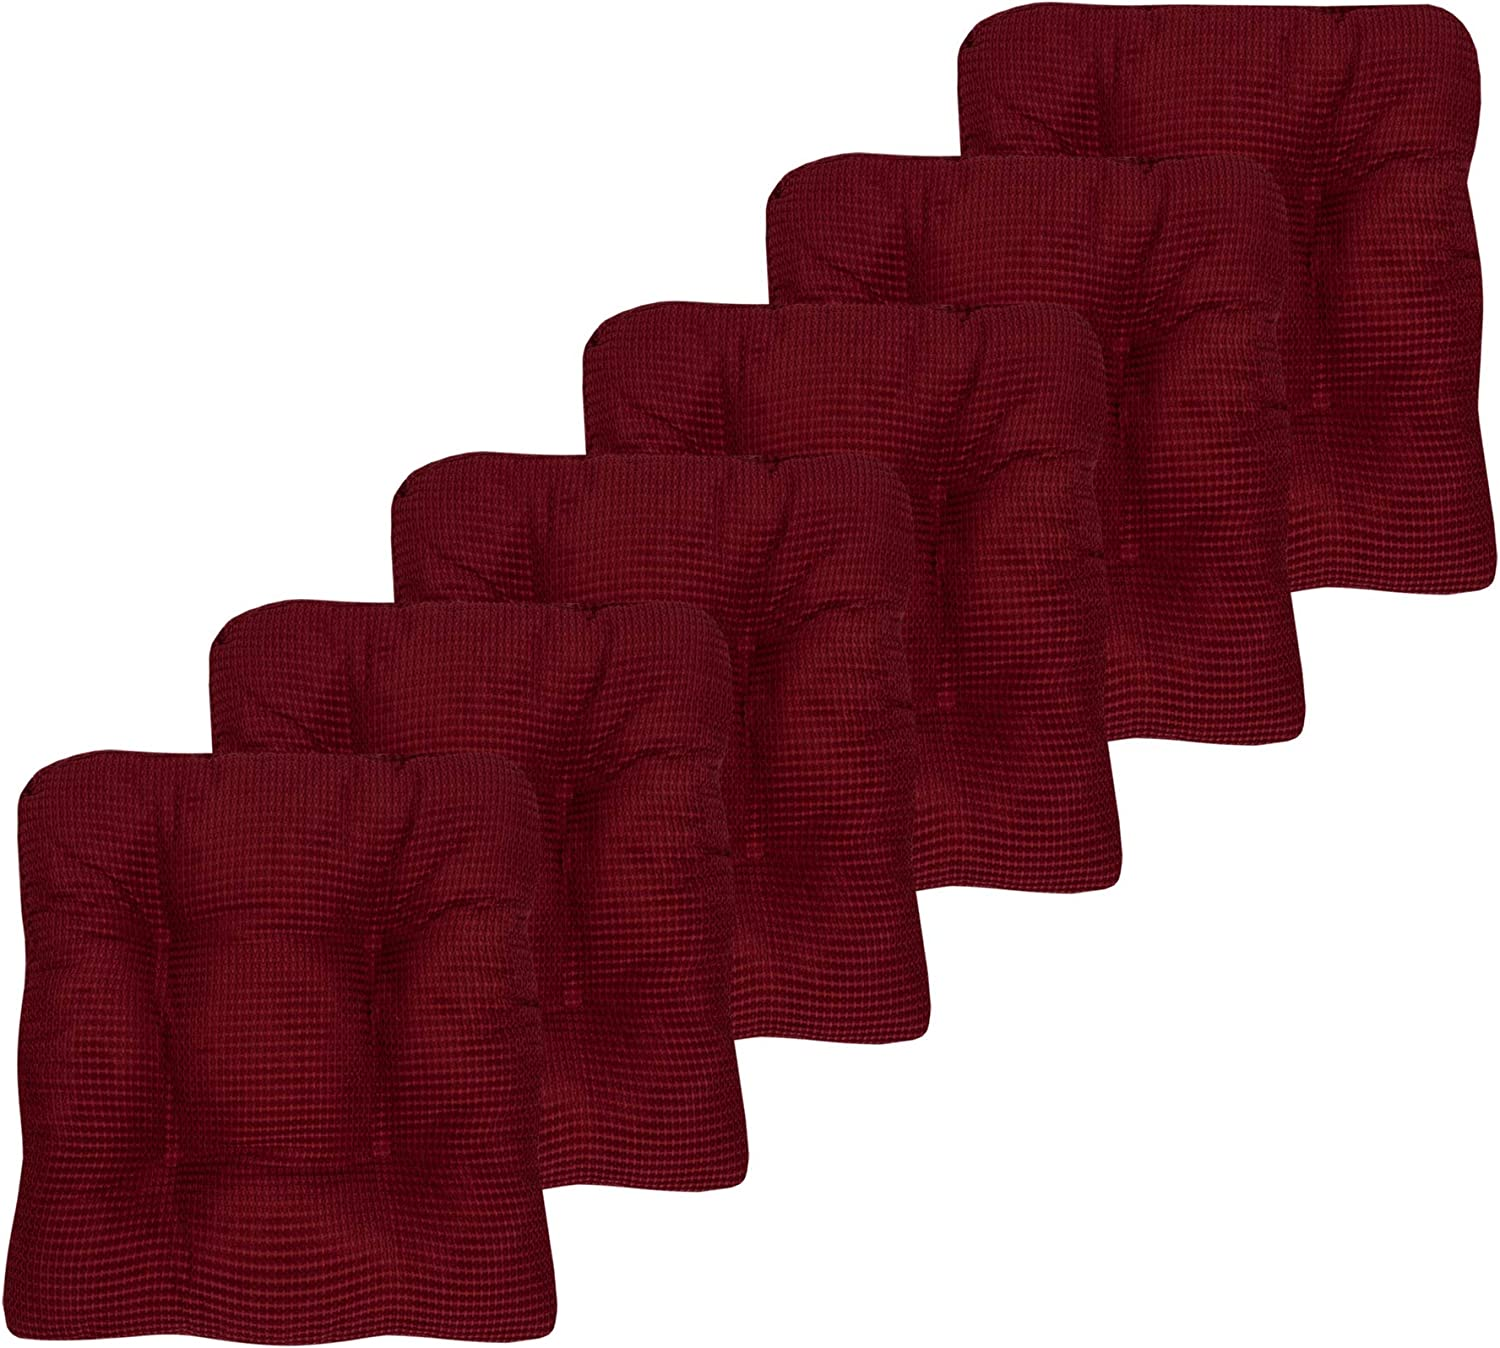 Sweet Home Collection Chair Cushion Crushed Memory Foam Pads Premium Slip Non Skid Microdot Rubber Back Tufted 16